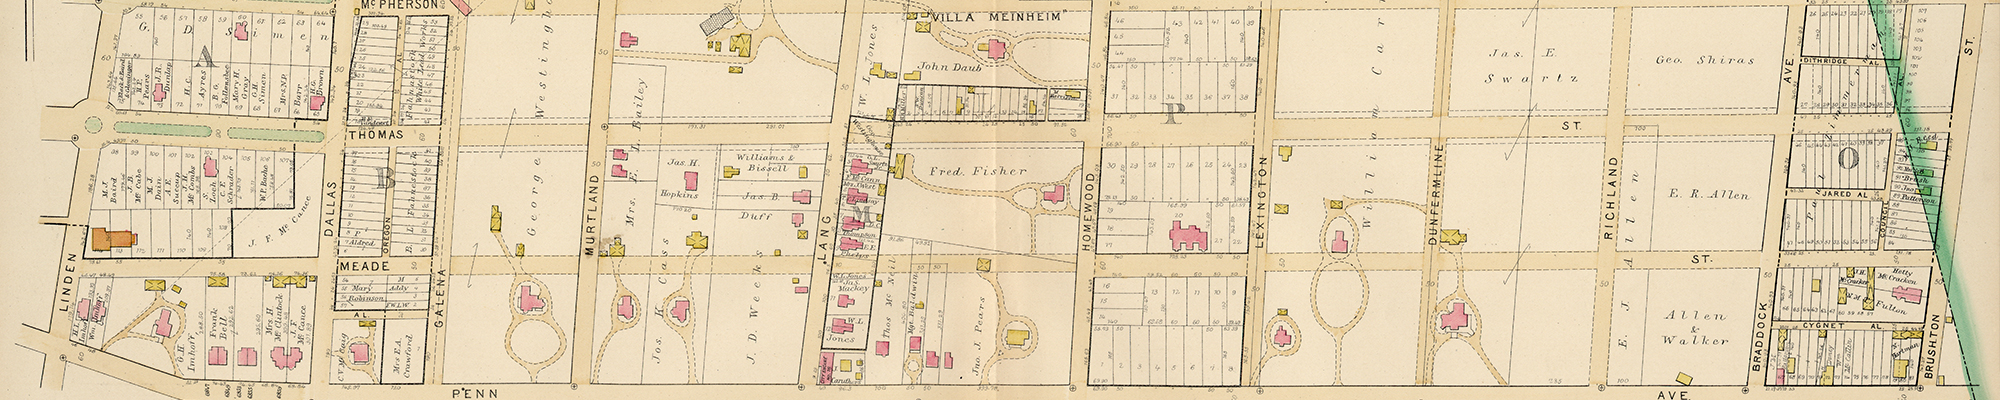 1890 section of map that includes Thomas Blvd.